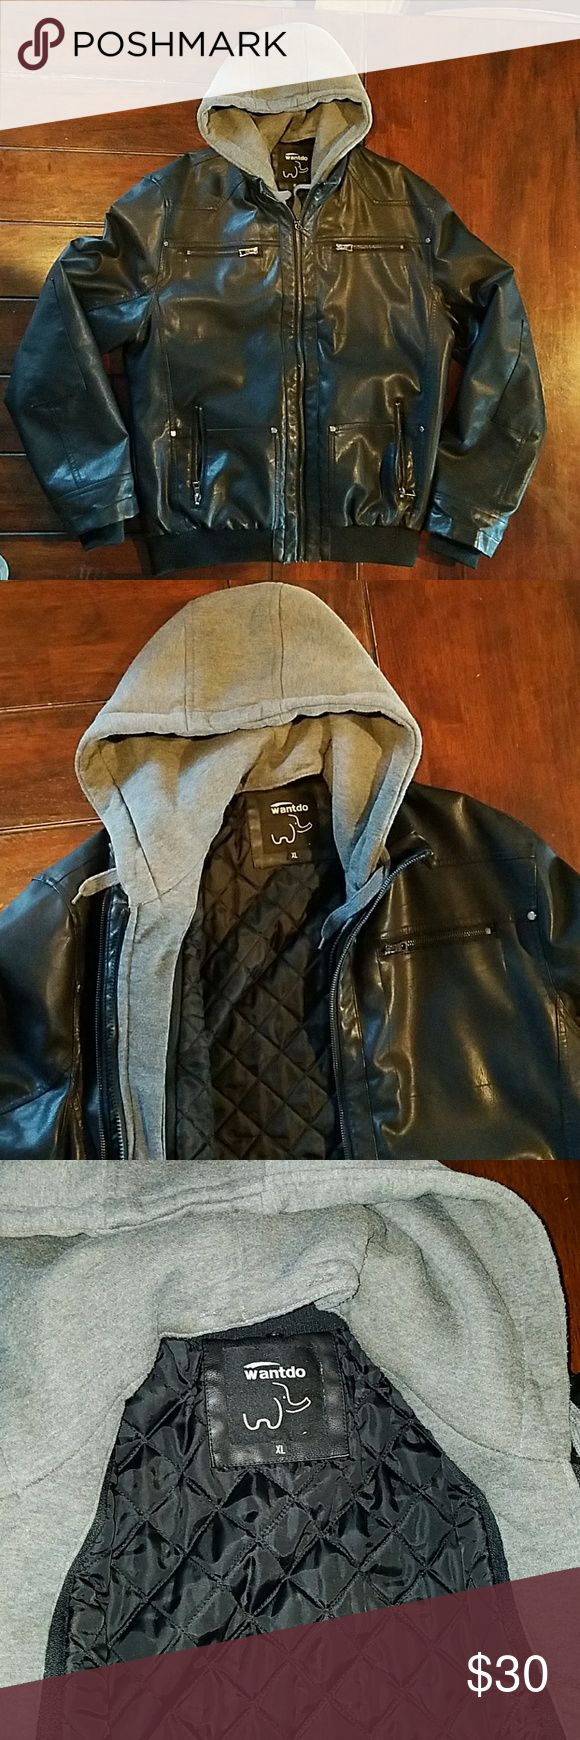 Wantdo Men's Faux Leather Jacket XL Men's XL Faux Leather Jacket with removable hood. Great condition. Only worn a handful of times. No rips or tears, all zippers work Wantdo Jackets & Coats